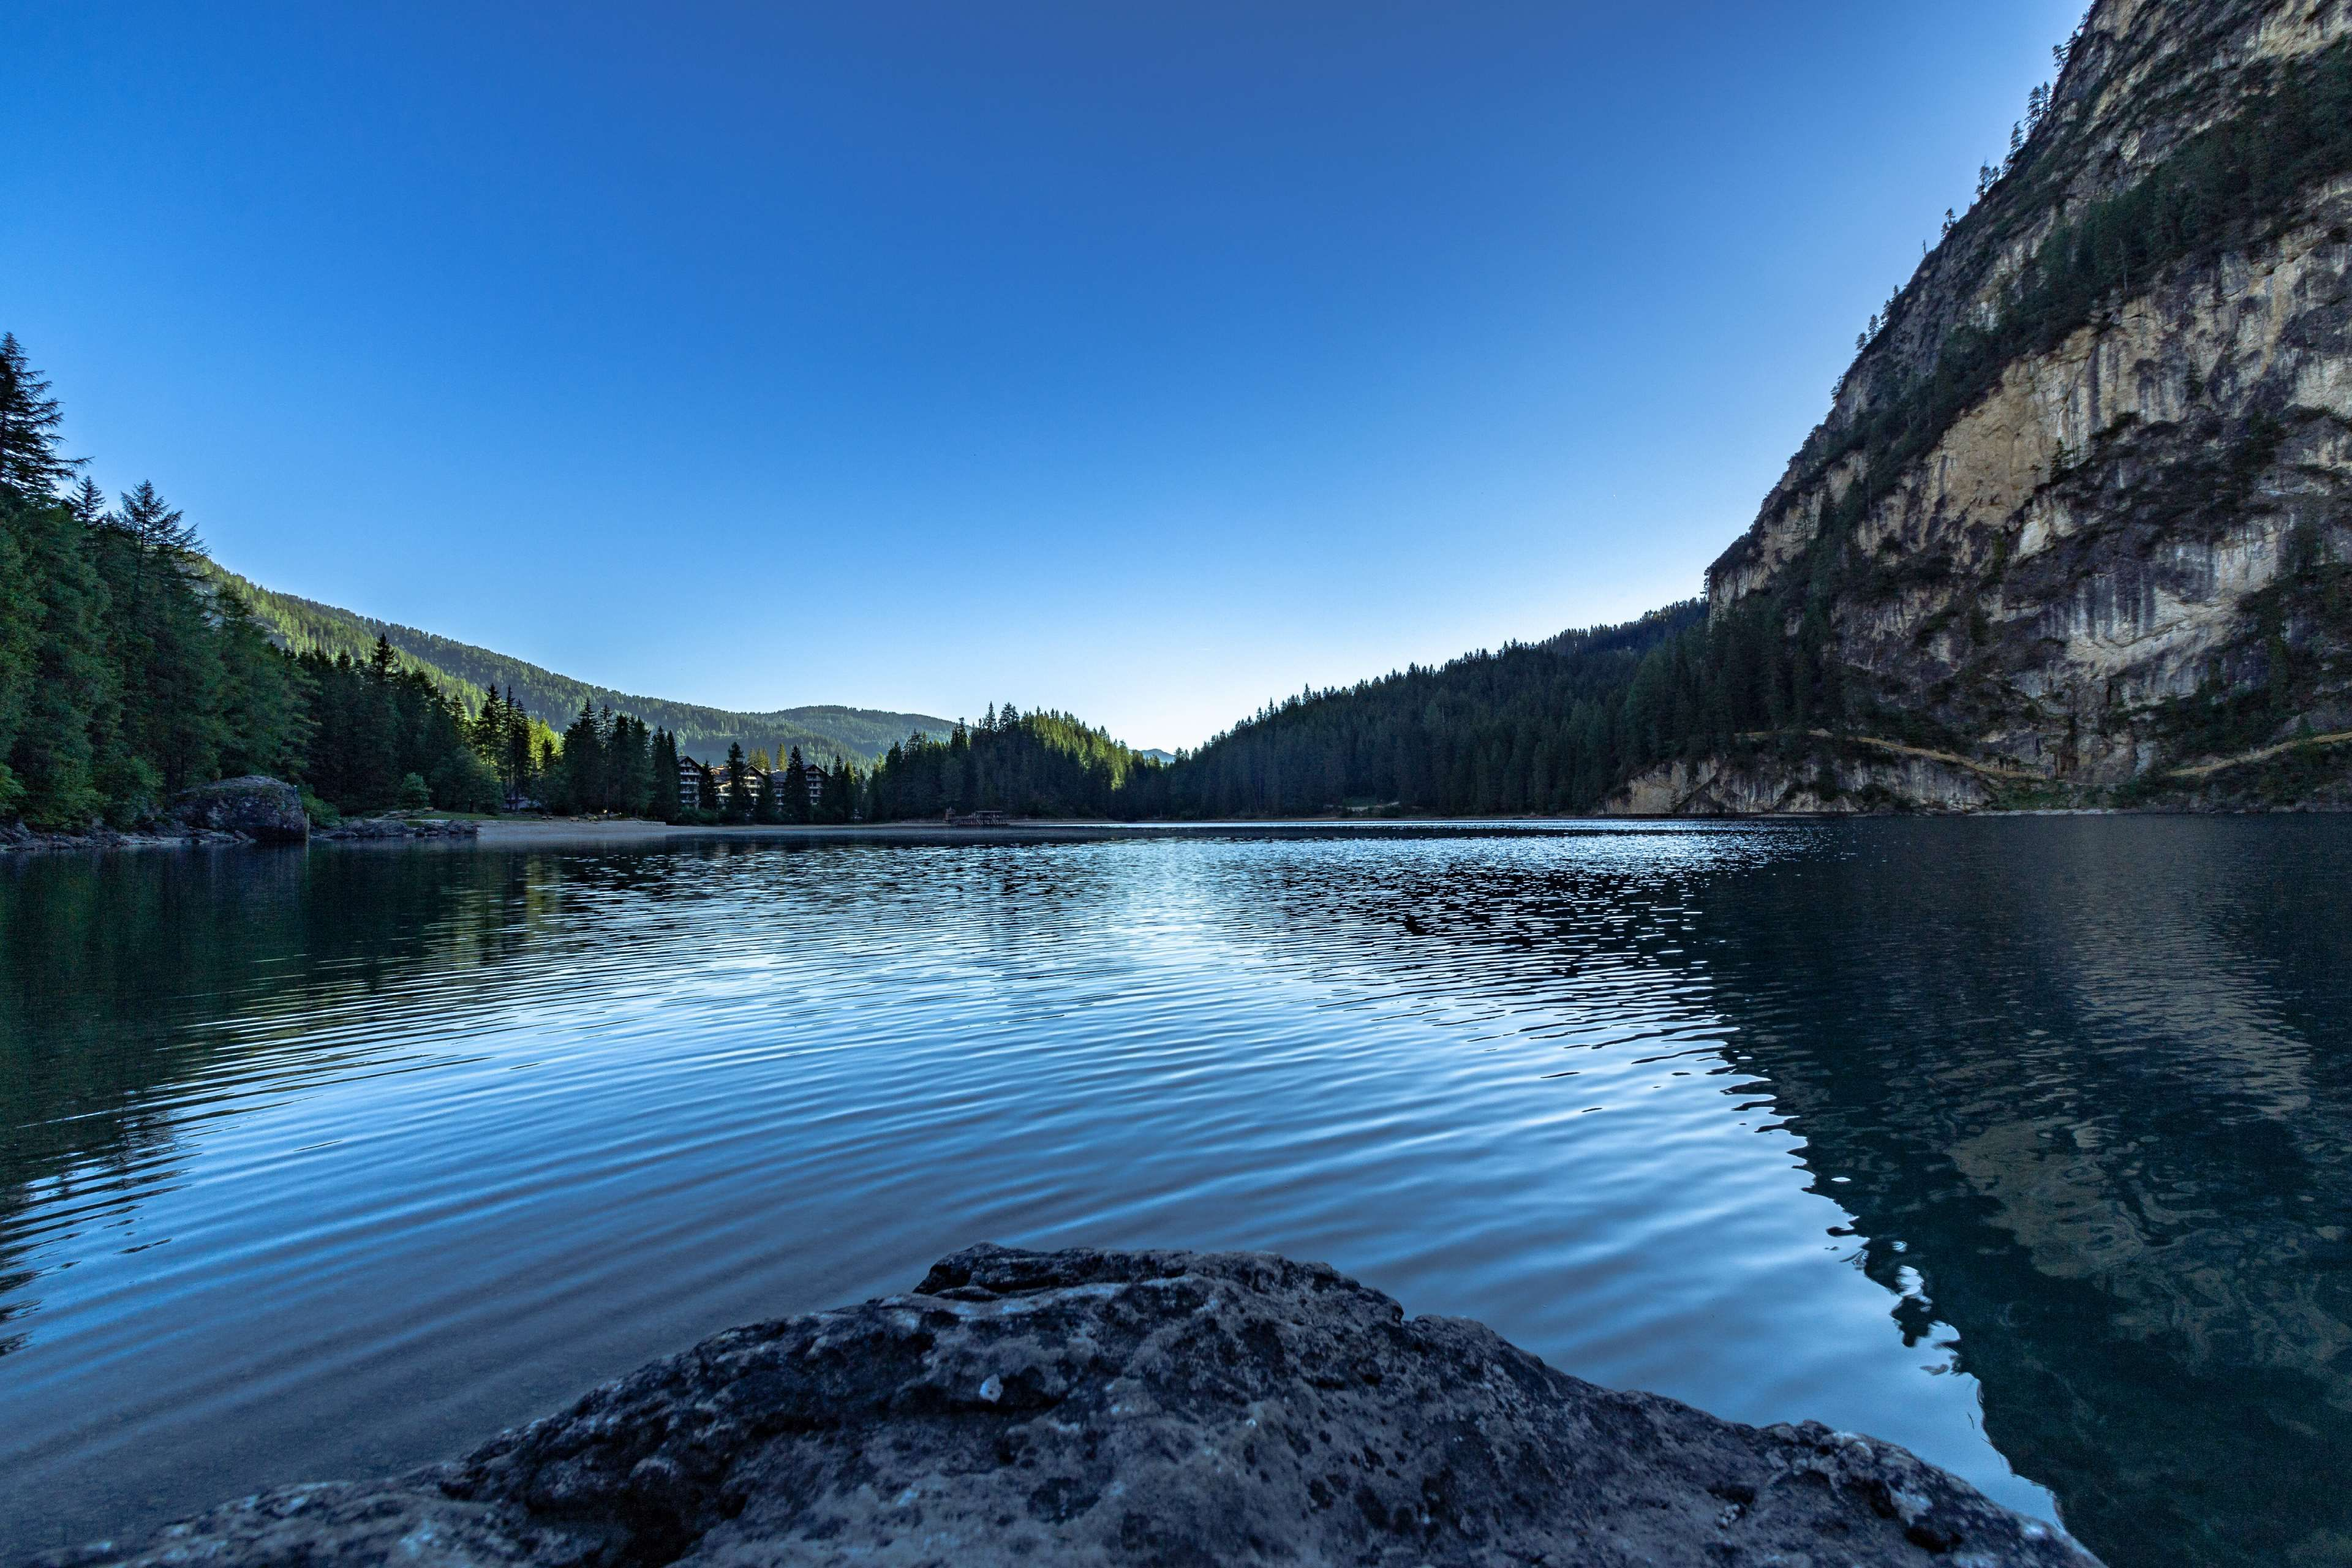 Blue Sky Clouds Daylight Forest Lake Lakeside Landscape Mountains Nature Nature Photography Nature Wallpaper Outdoors Peaceful Reflection River R Wilderness Camping Beautiful Scenery Pictures Nature Photography